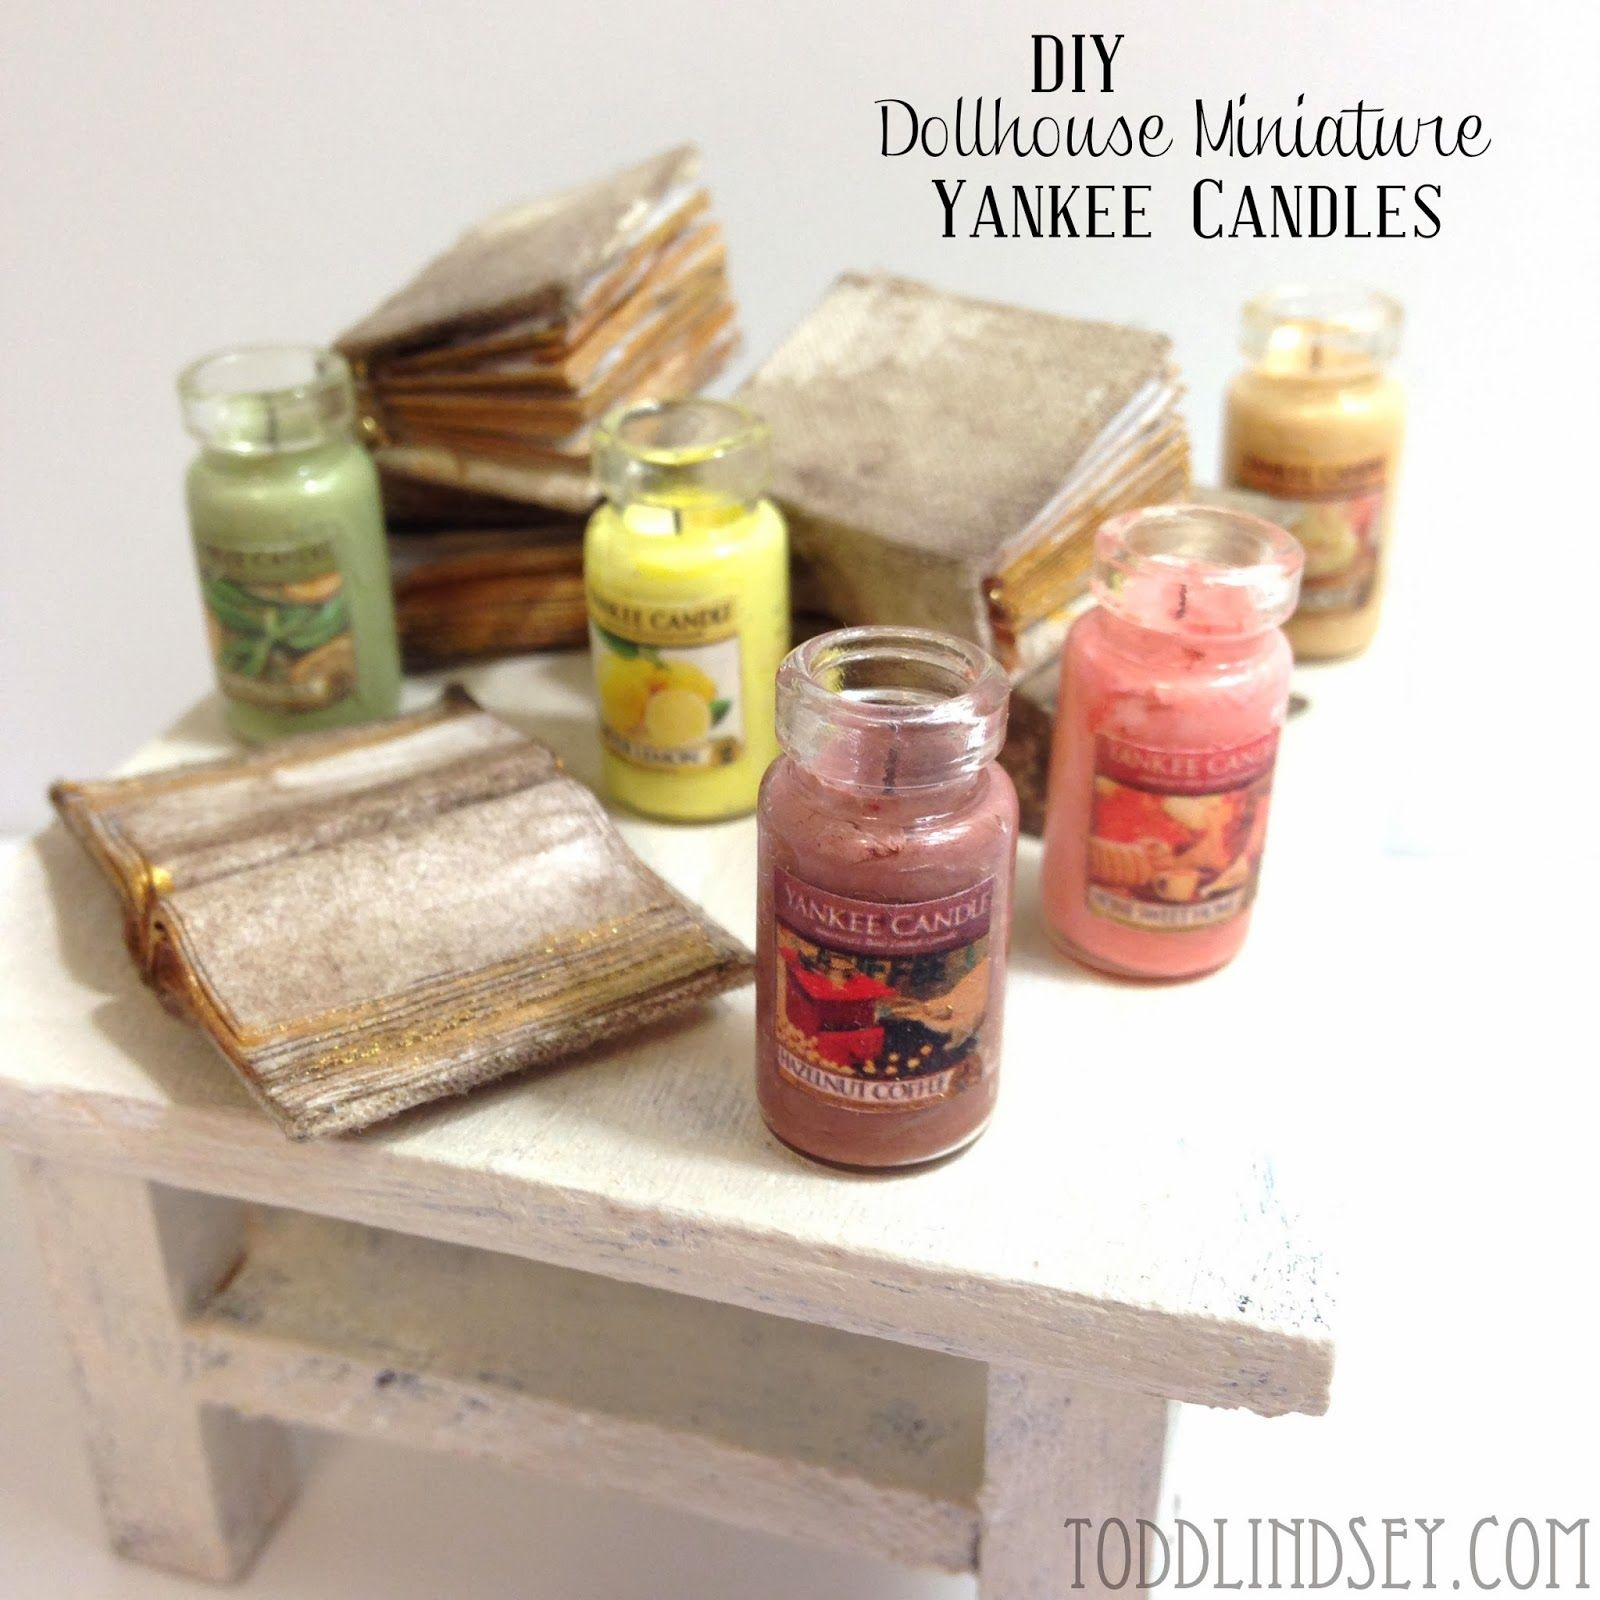 Printable Dollhouse Furniture Patterns Diy Dollhouse Miniature Yankee Candles Mini Things Pinterest